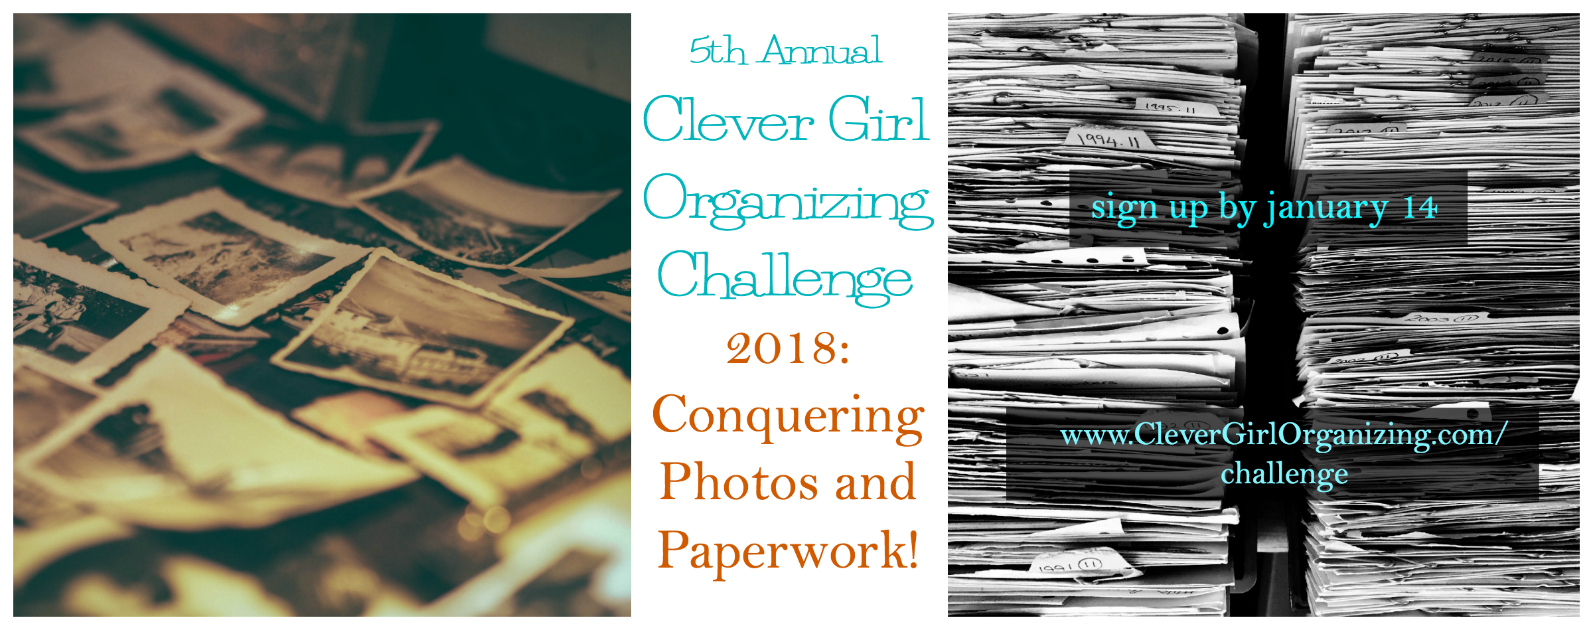 2018 Clever Girl Organizing Challenge Sign Up